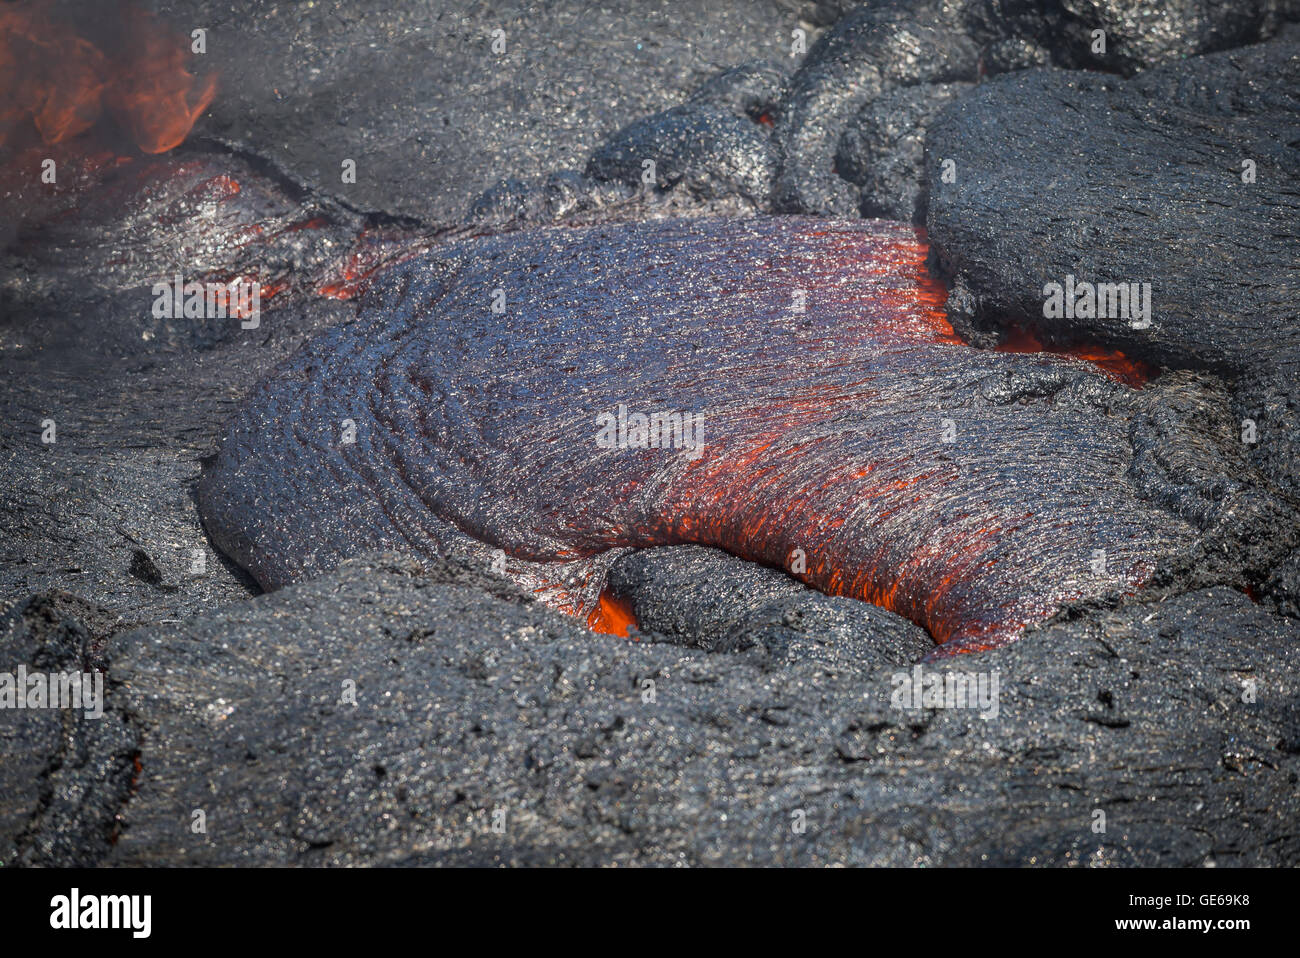 Lava flow in lava field, Hawaii volcanoes National Park - Stock Image